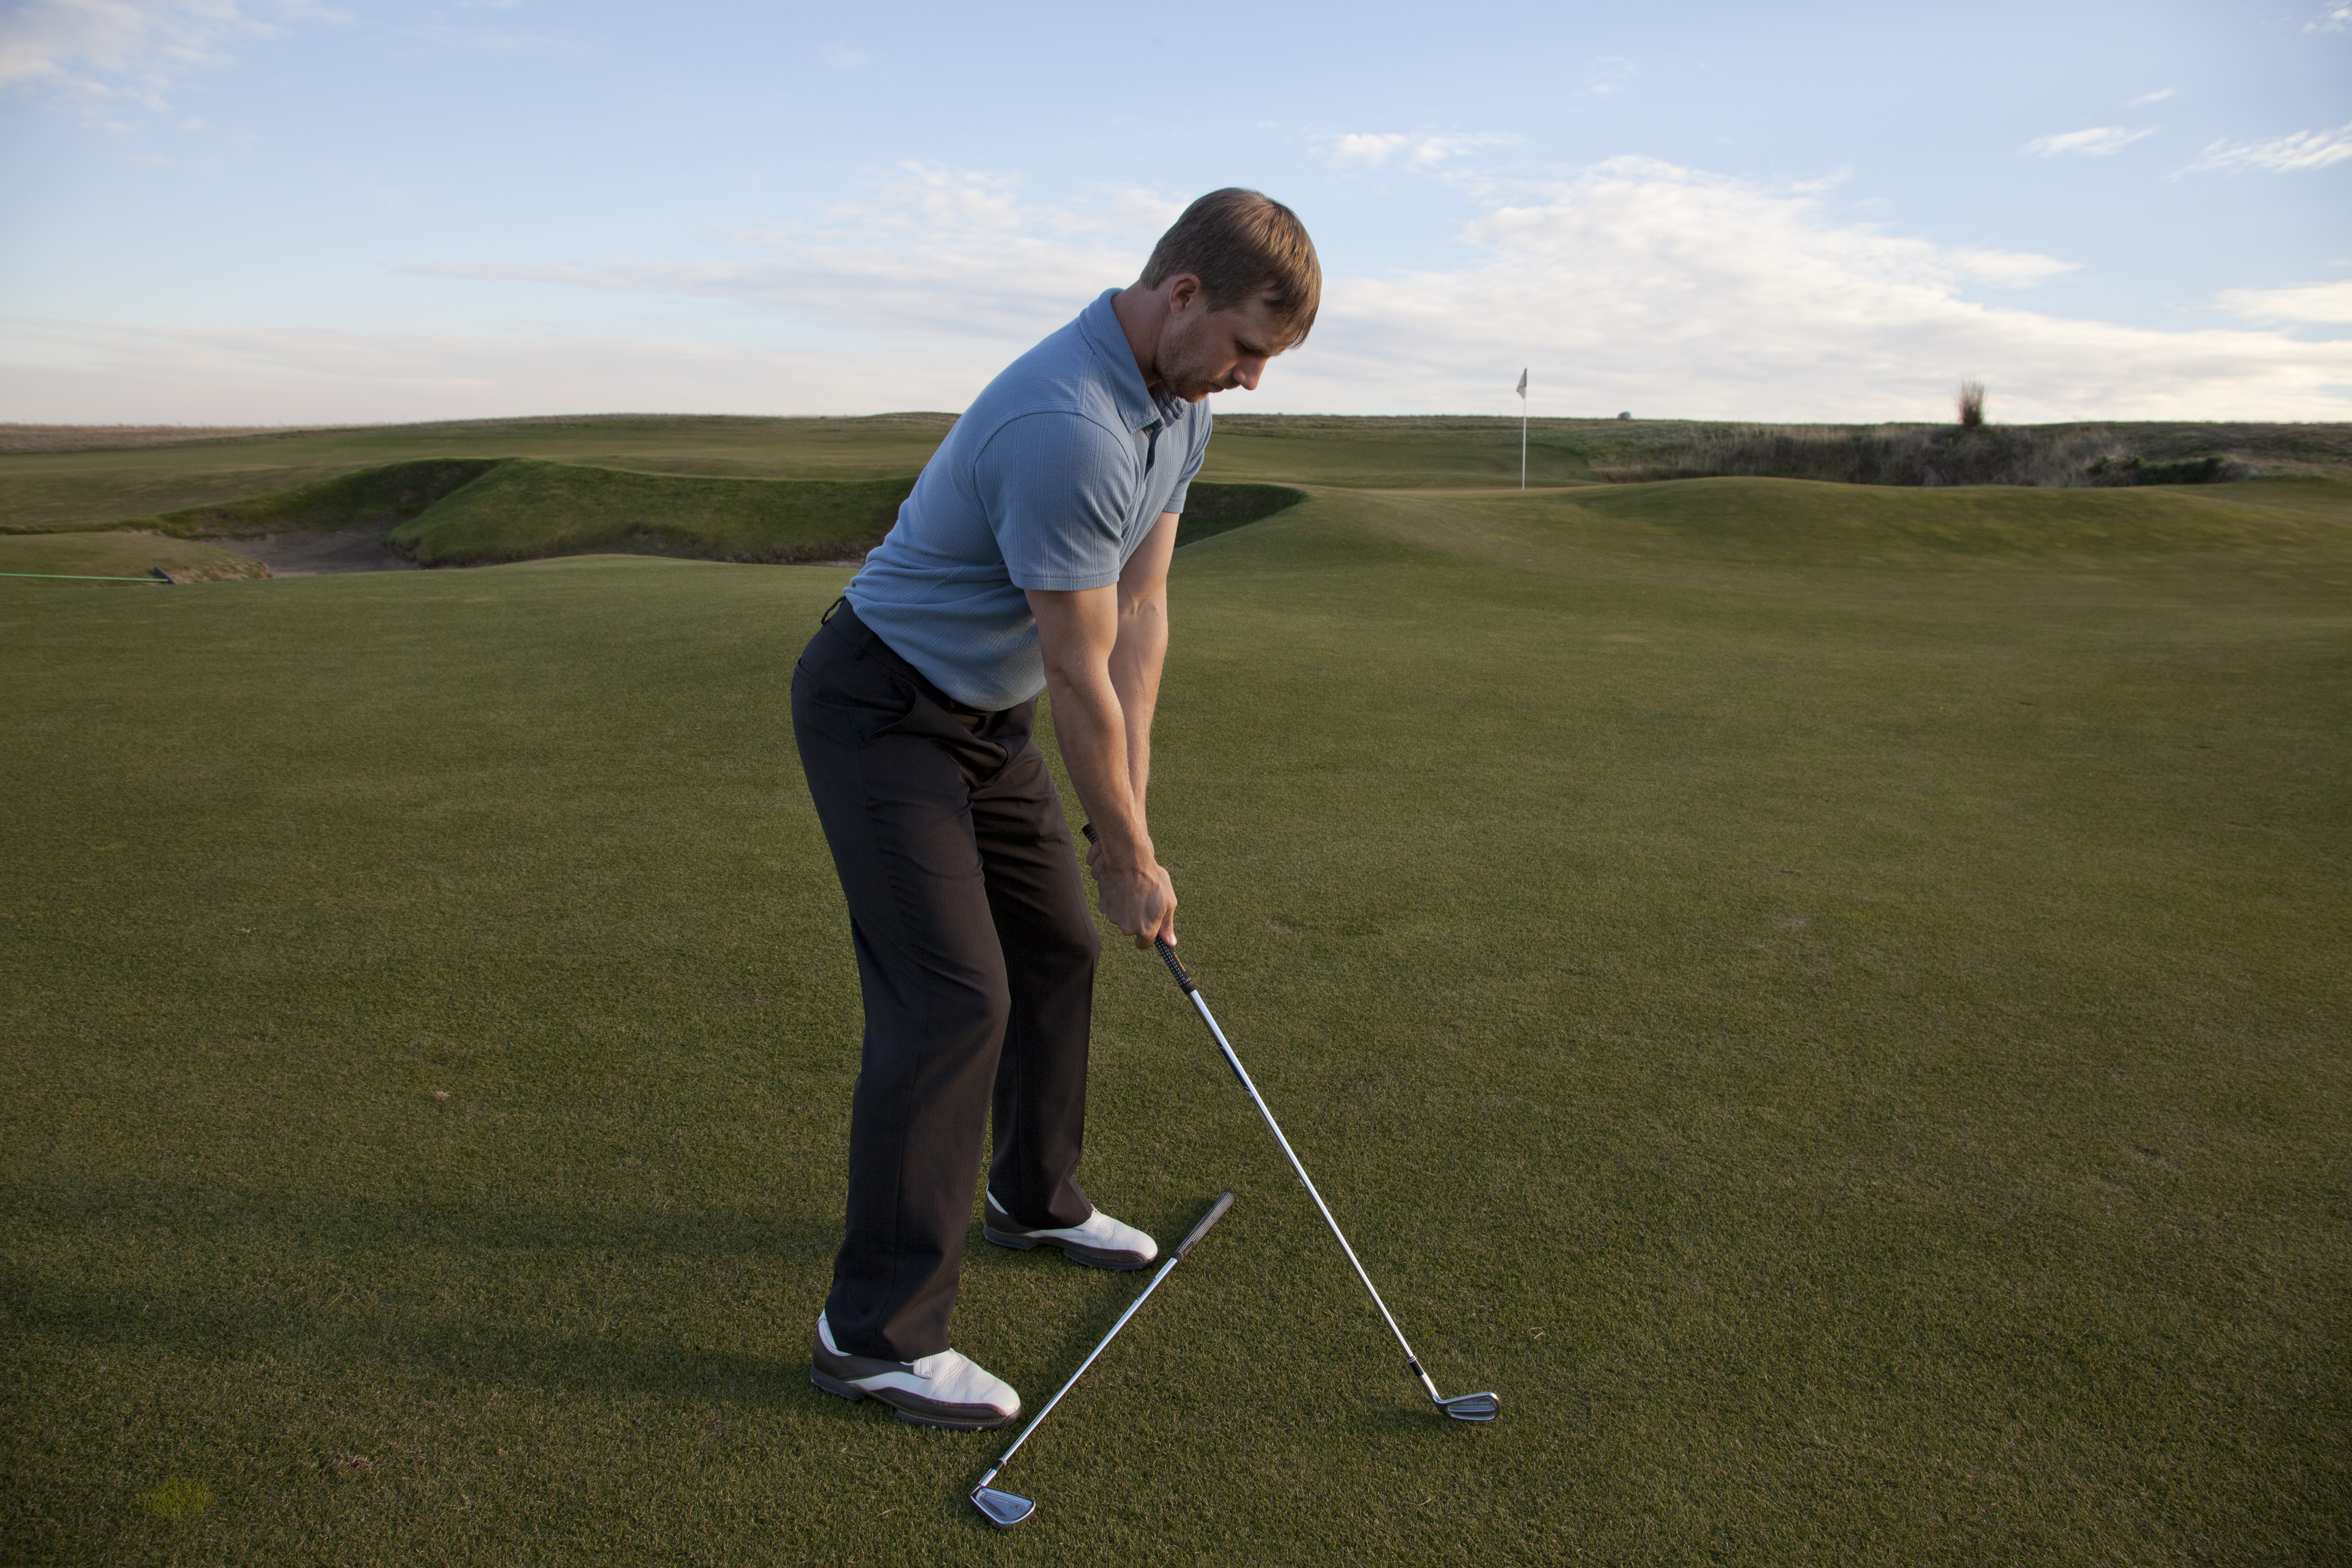 The 8 Best Golf Training Aids of 2019 - tripsavvy.com